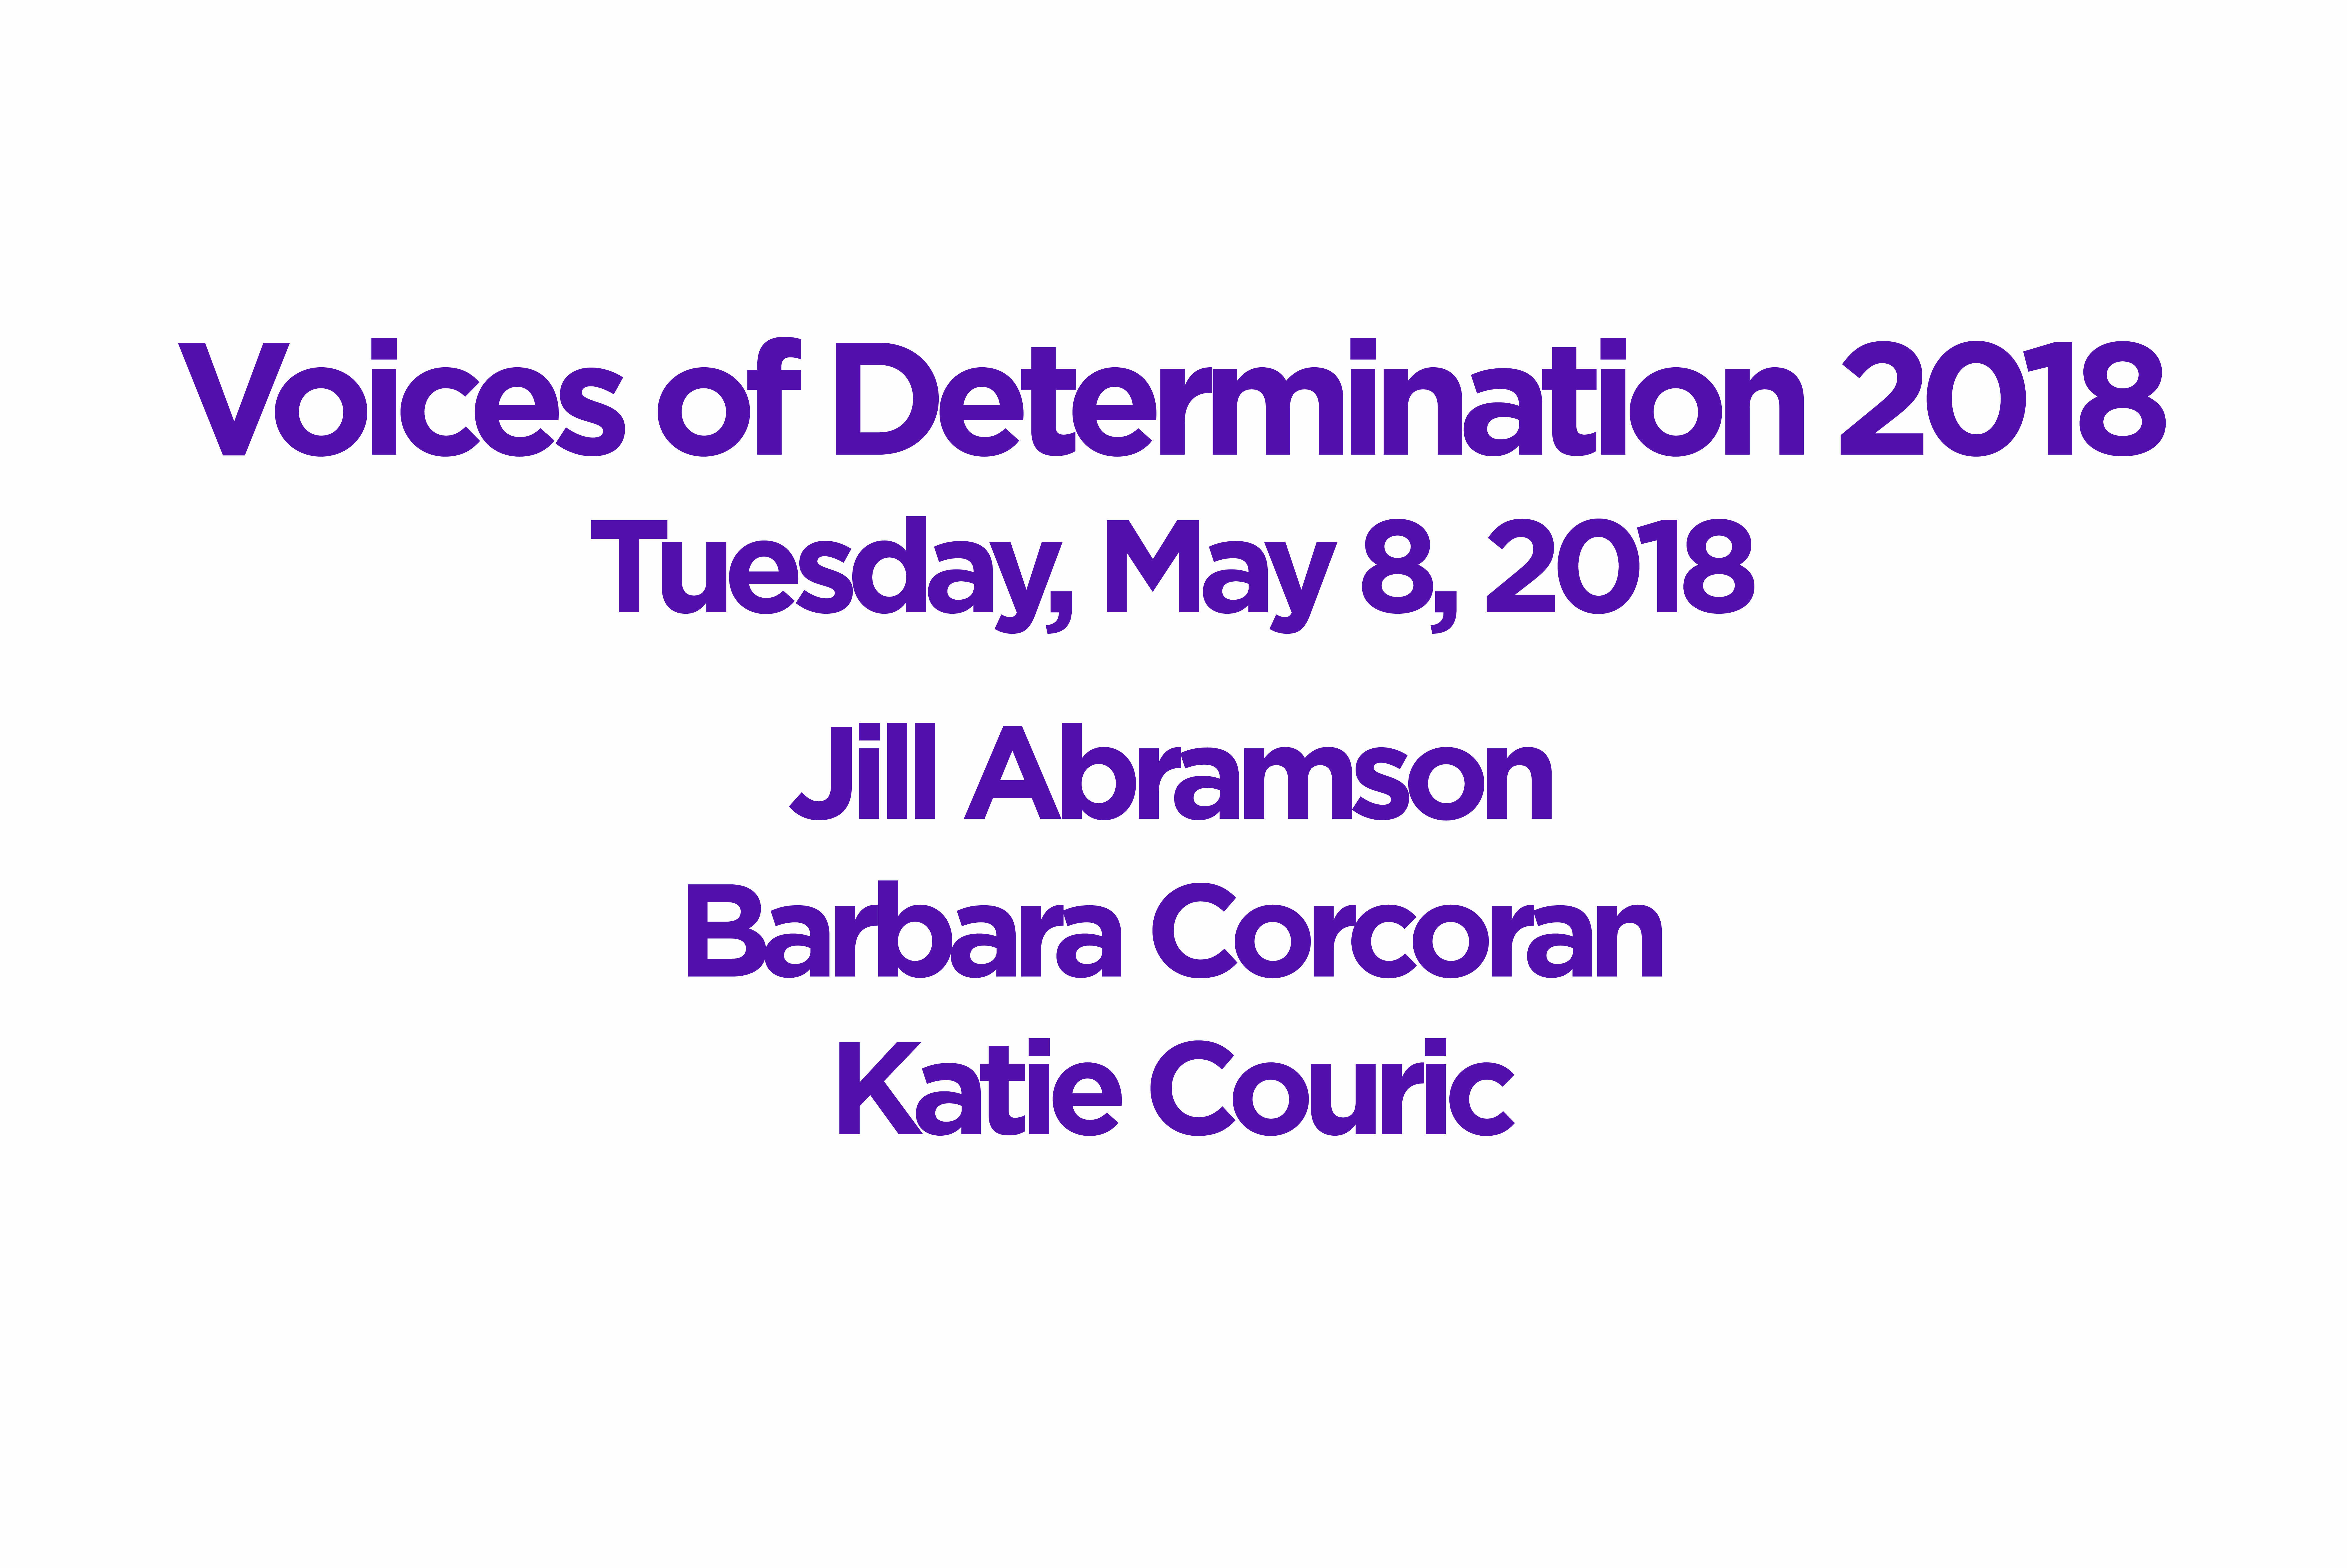 NTSAD Presents Voices of Determination in New York City